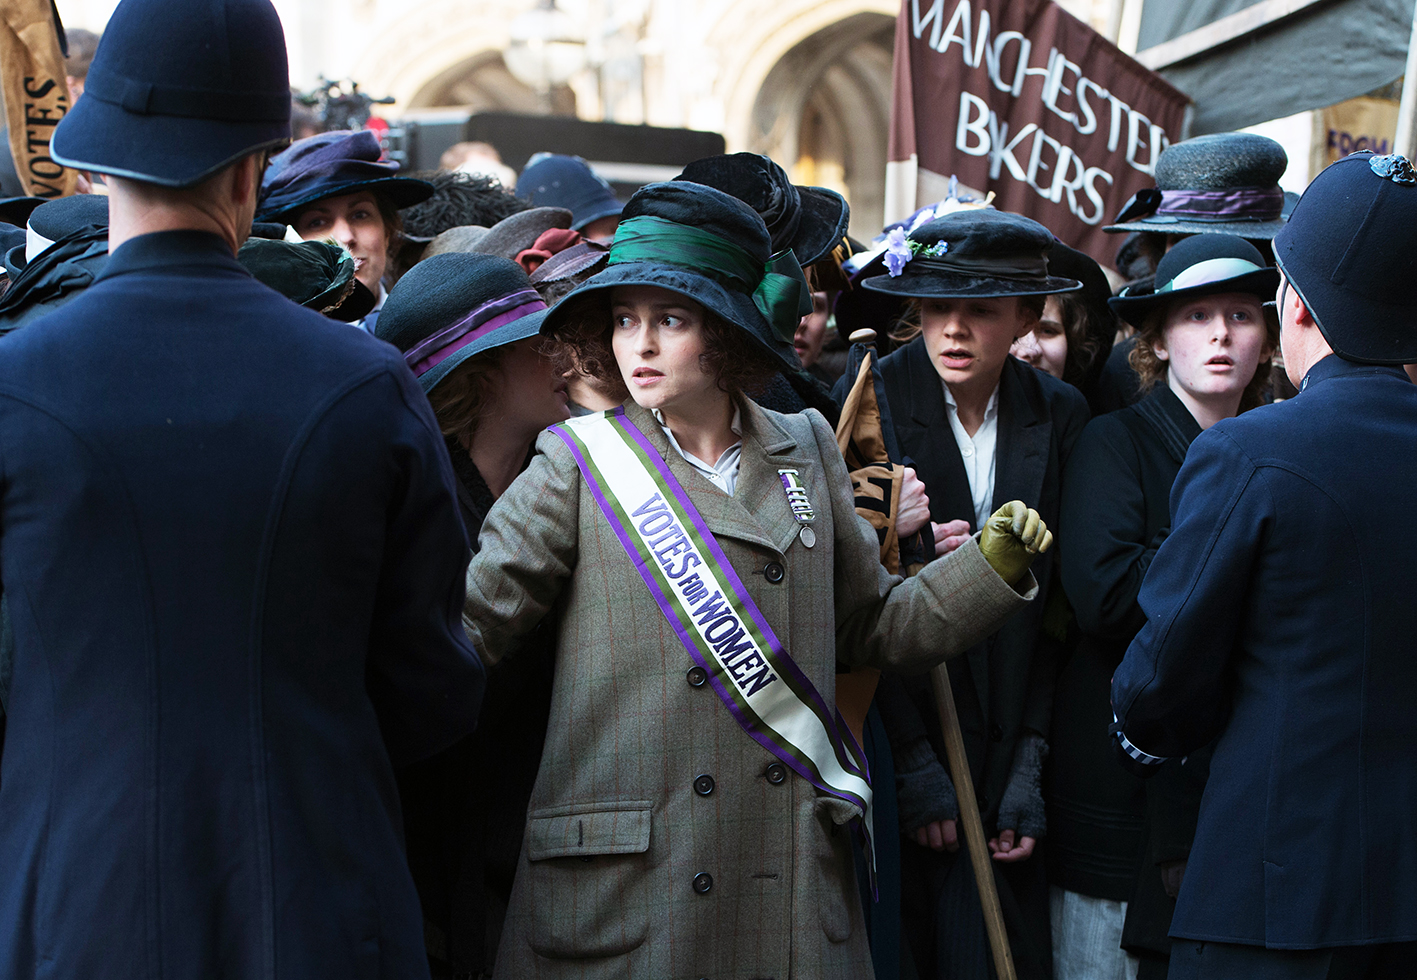 1be5e9e9bbb34 Feminine power: 6 times female-led protests changed the world Since the  suffragettes, women have used their collective power to protest against ...